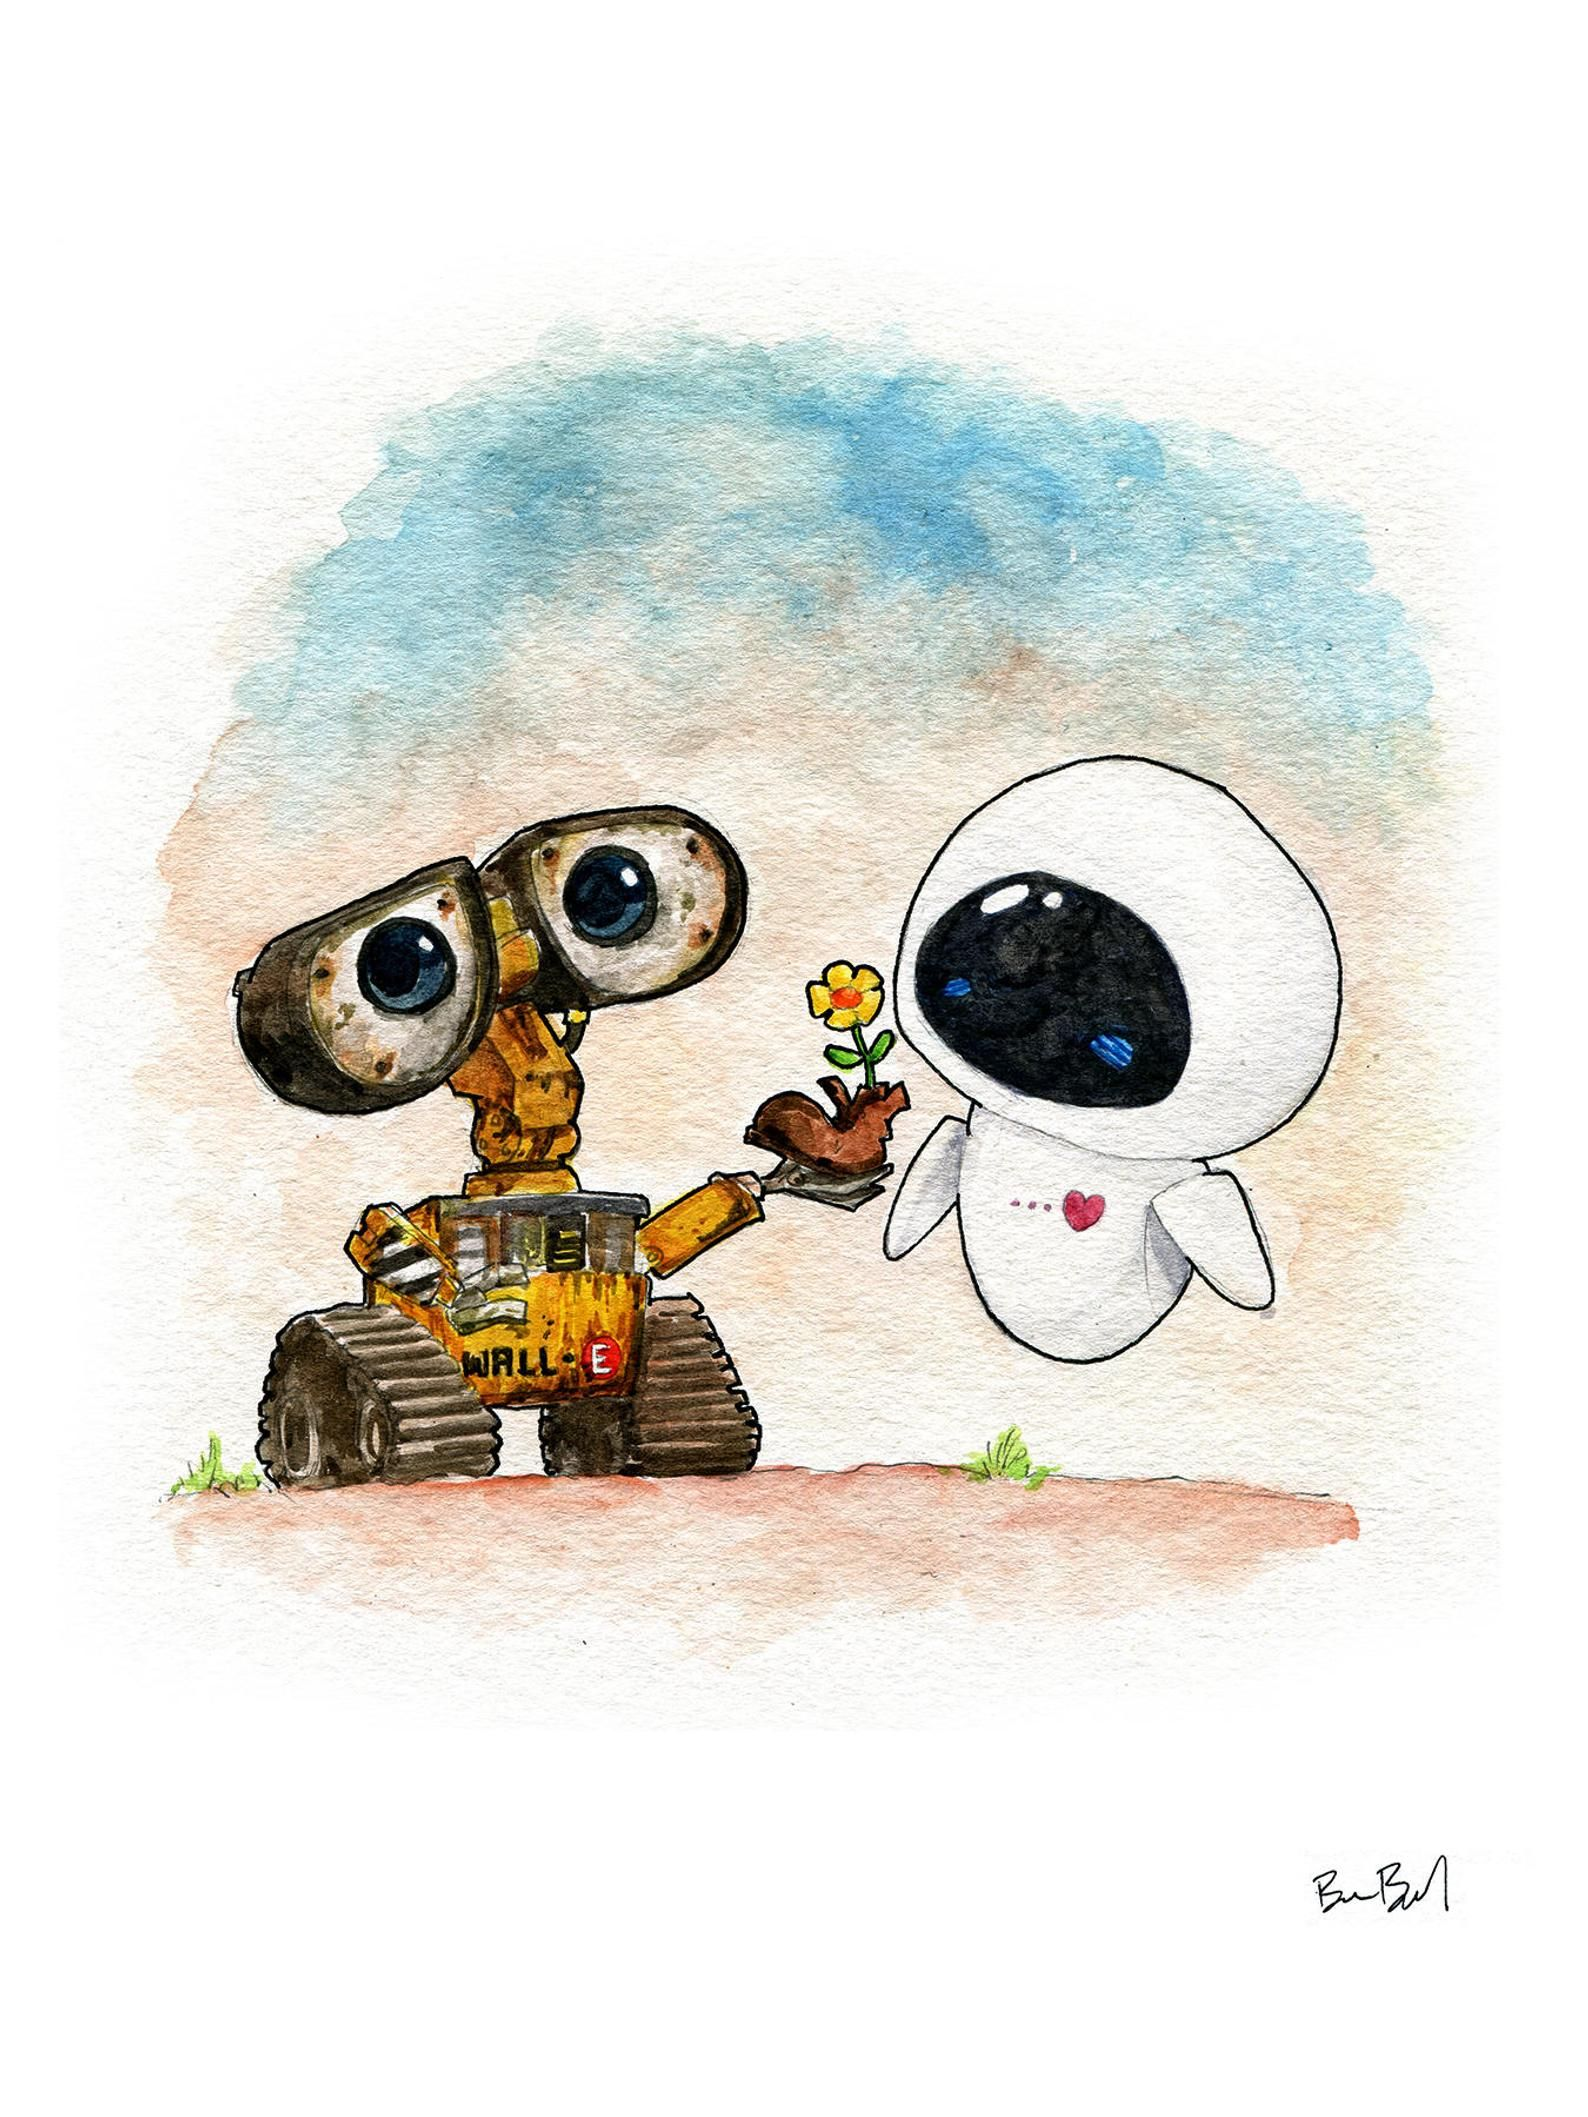 Wall-E and EVE Inspired Watercolor Print